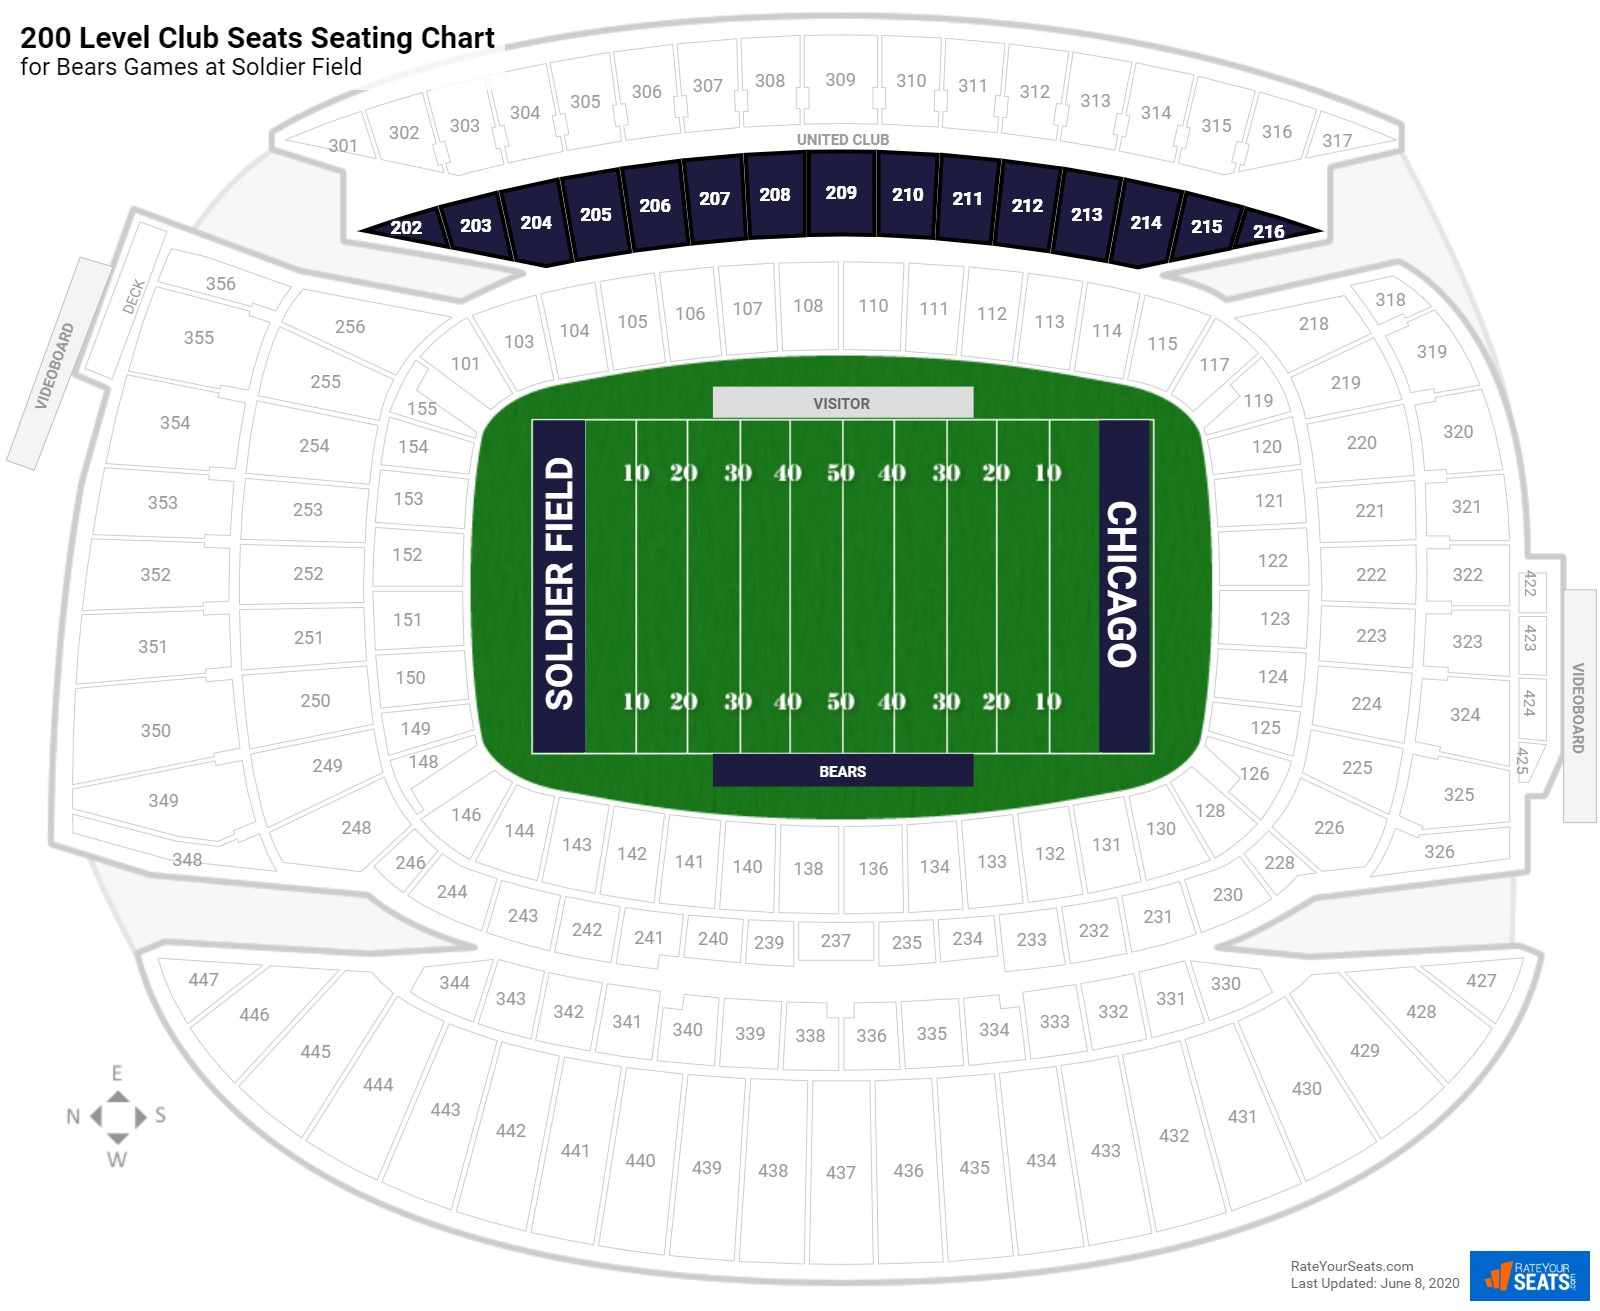 Soldier Field 200 Level Club Seats seating chart